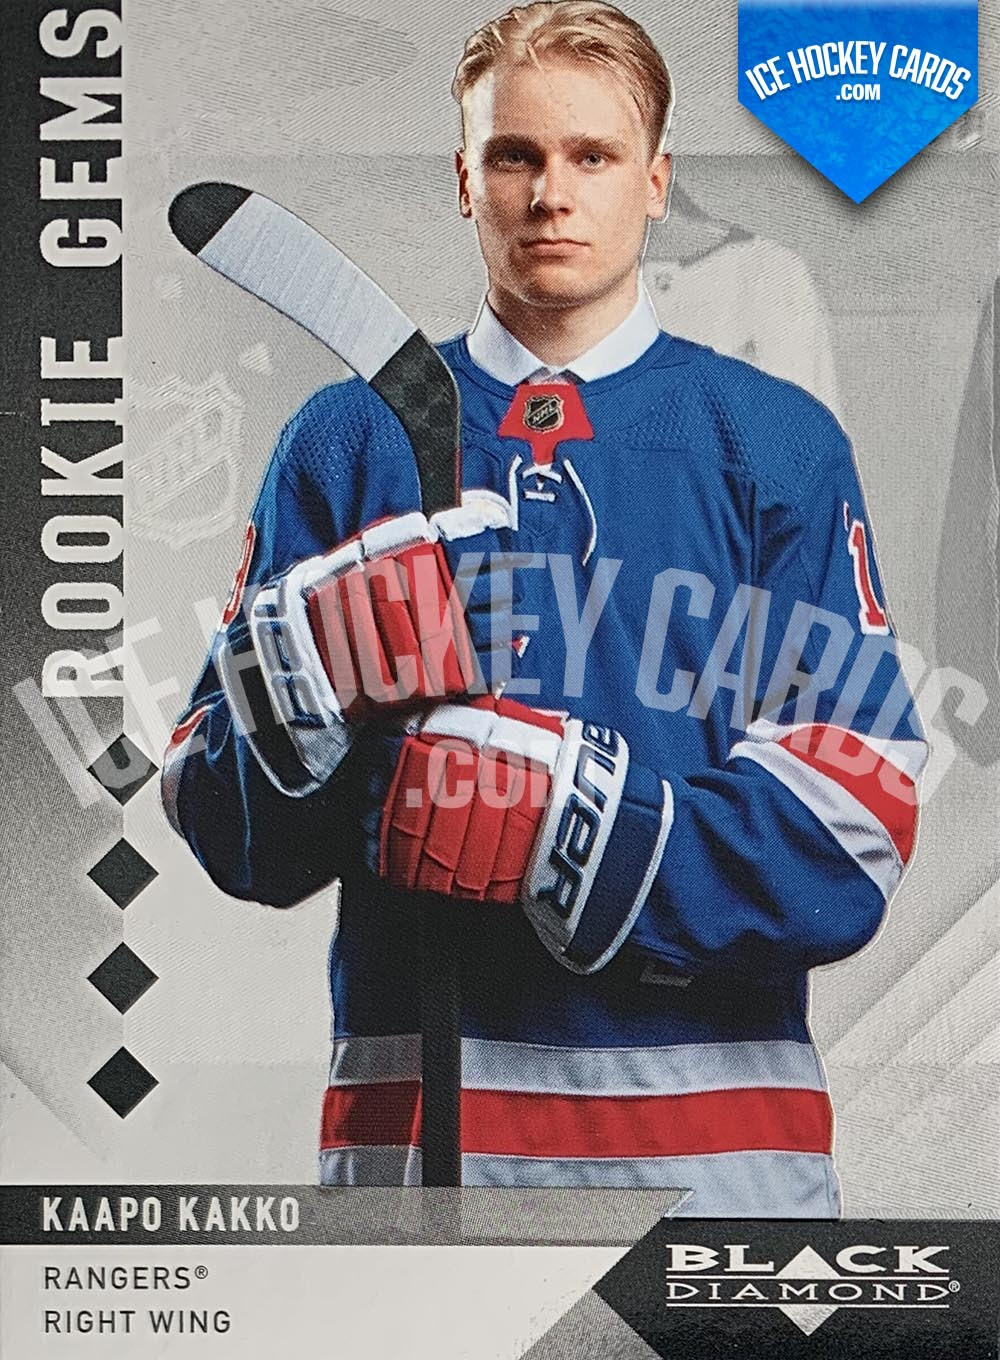 Upper Deck - Black Diamond 2019-20 - Kaapo Kakko Rookie Gems Quadruple Diamonds Retro RC # to 99